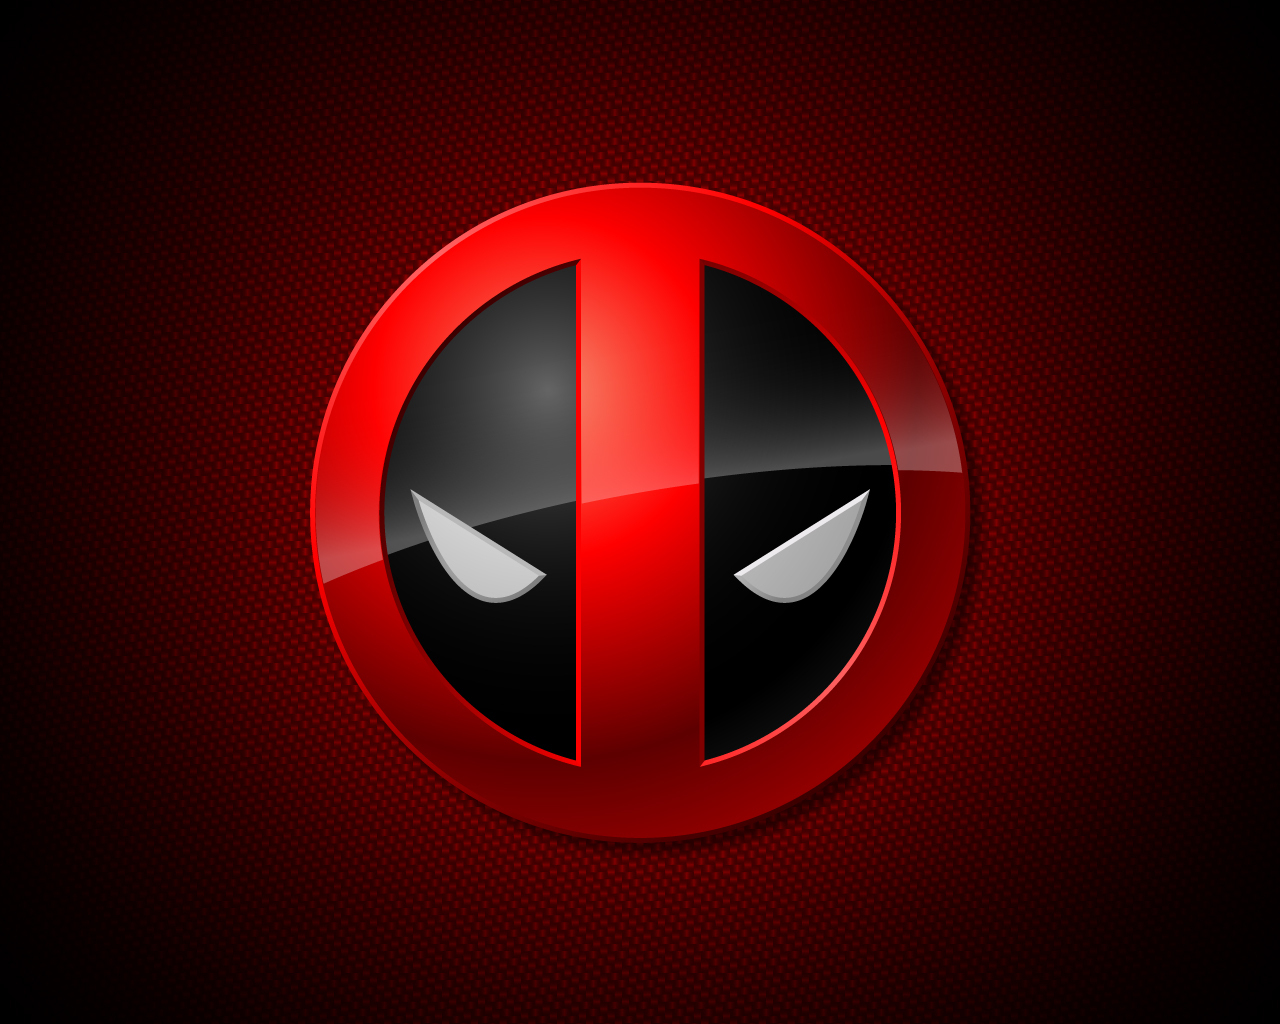 http://2.bp.blogspot.com/-Nv56bMzMLbA/T7F1rkXPm1I/AAAAAAAACI4/04DZjPAFZi0/s1600/Deadpool-Wallpaper-deadpool-10619272-1280-1024.jpg